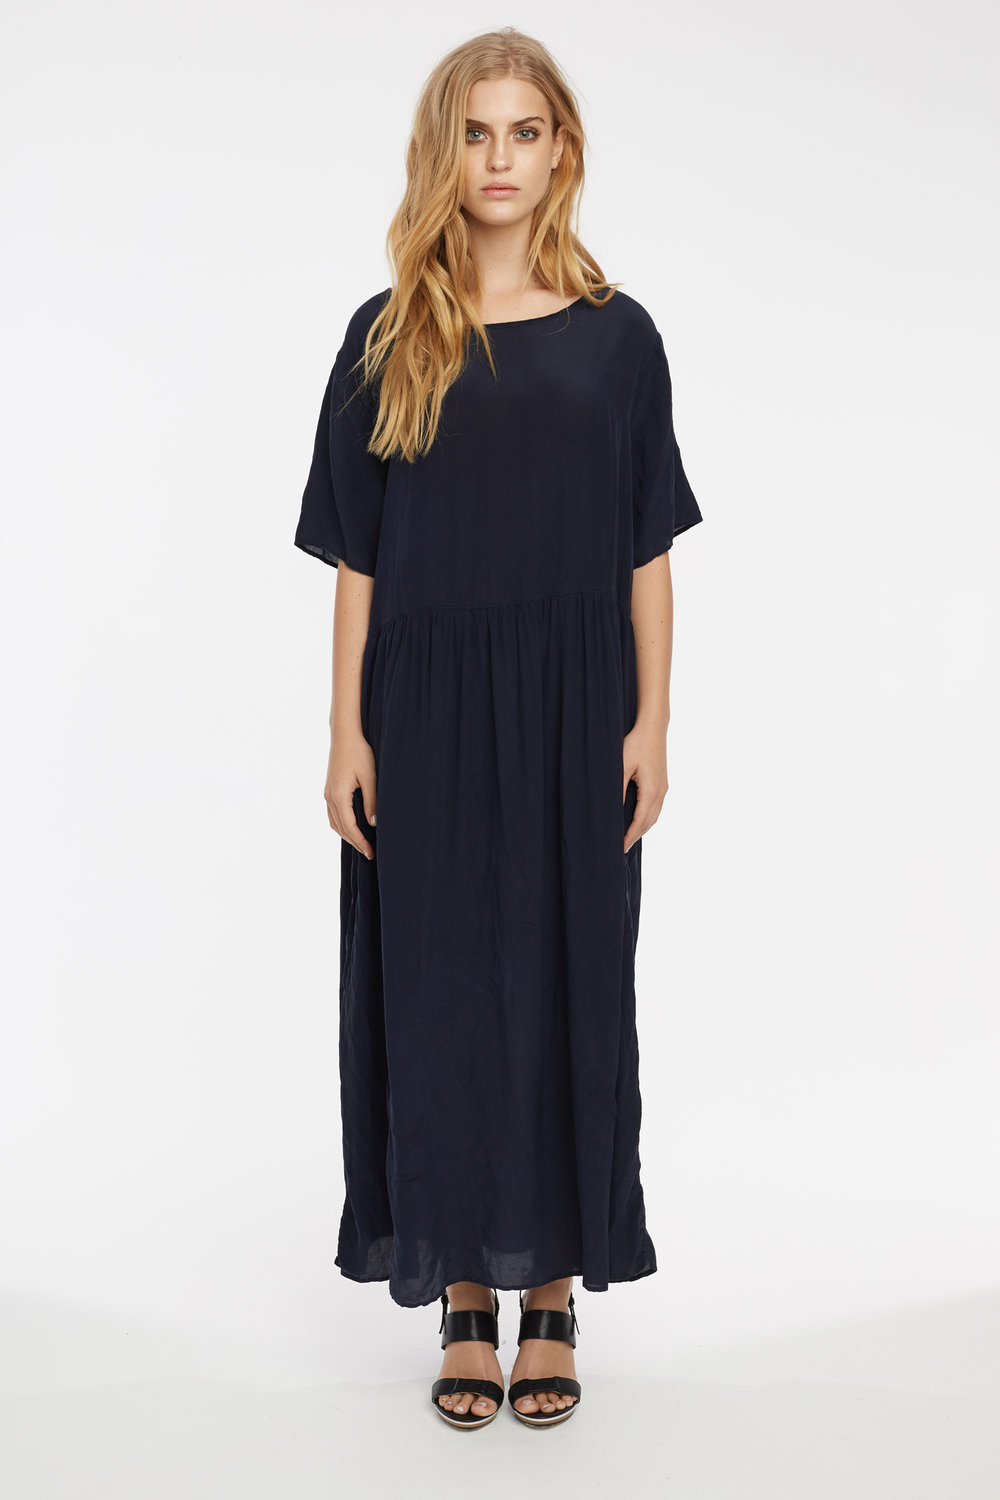 GRUNDY DRESS DARK NAVY